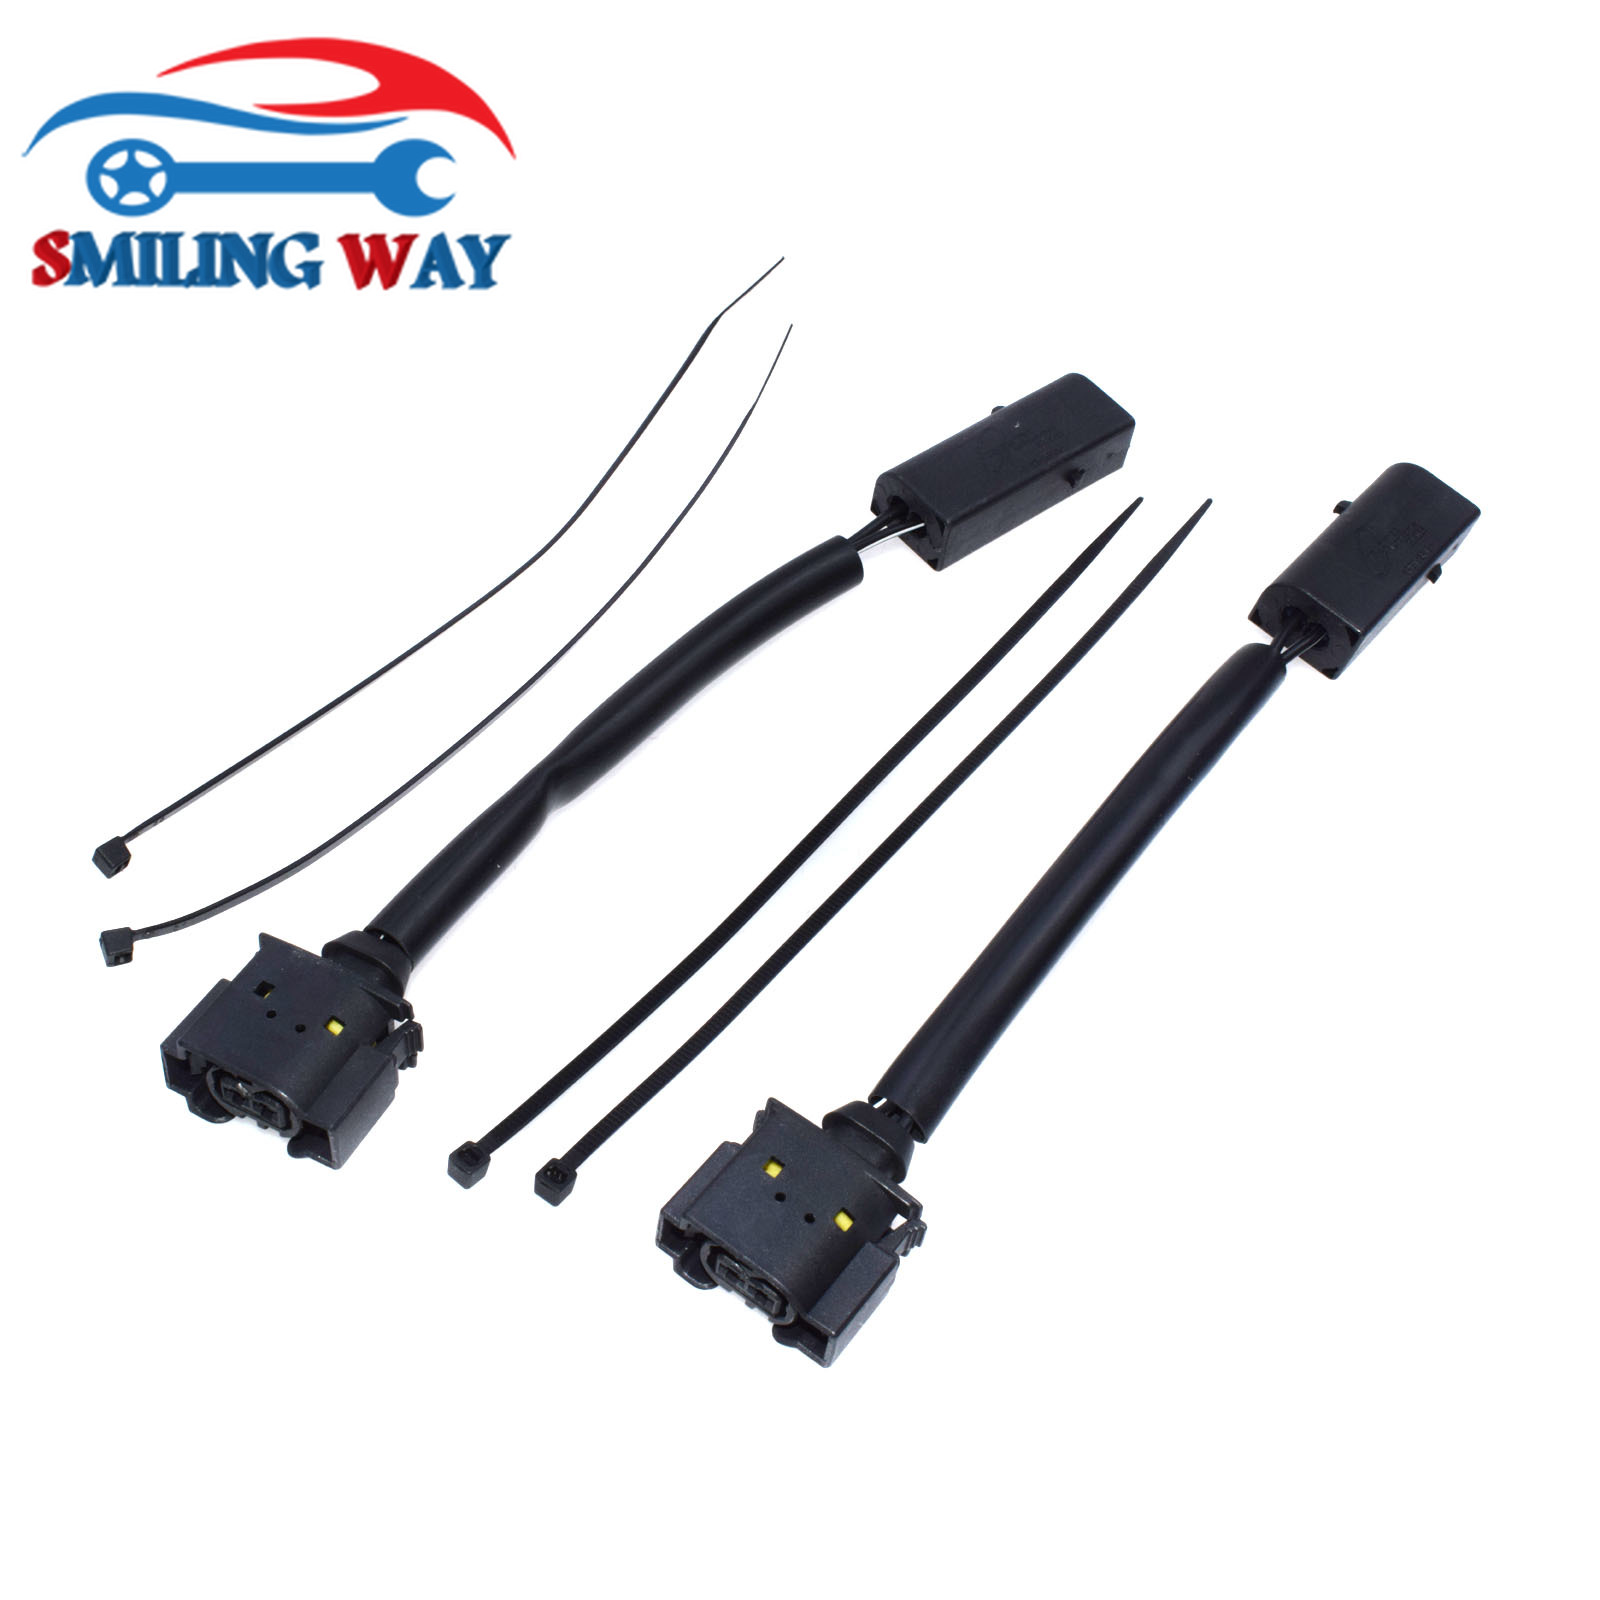 Pleasant Camshaft Adapter Connector Adjuster Wiring Harness Cable For Wiring Digital Resources Tziciprontobusorg